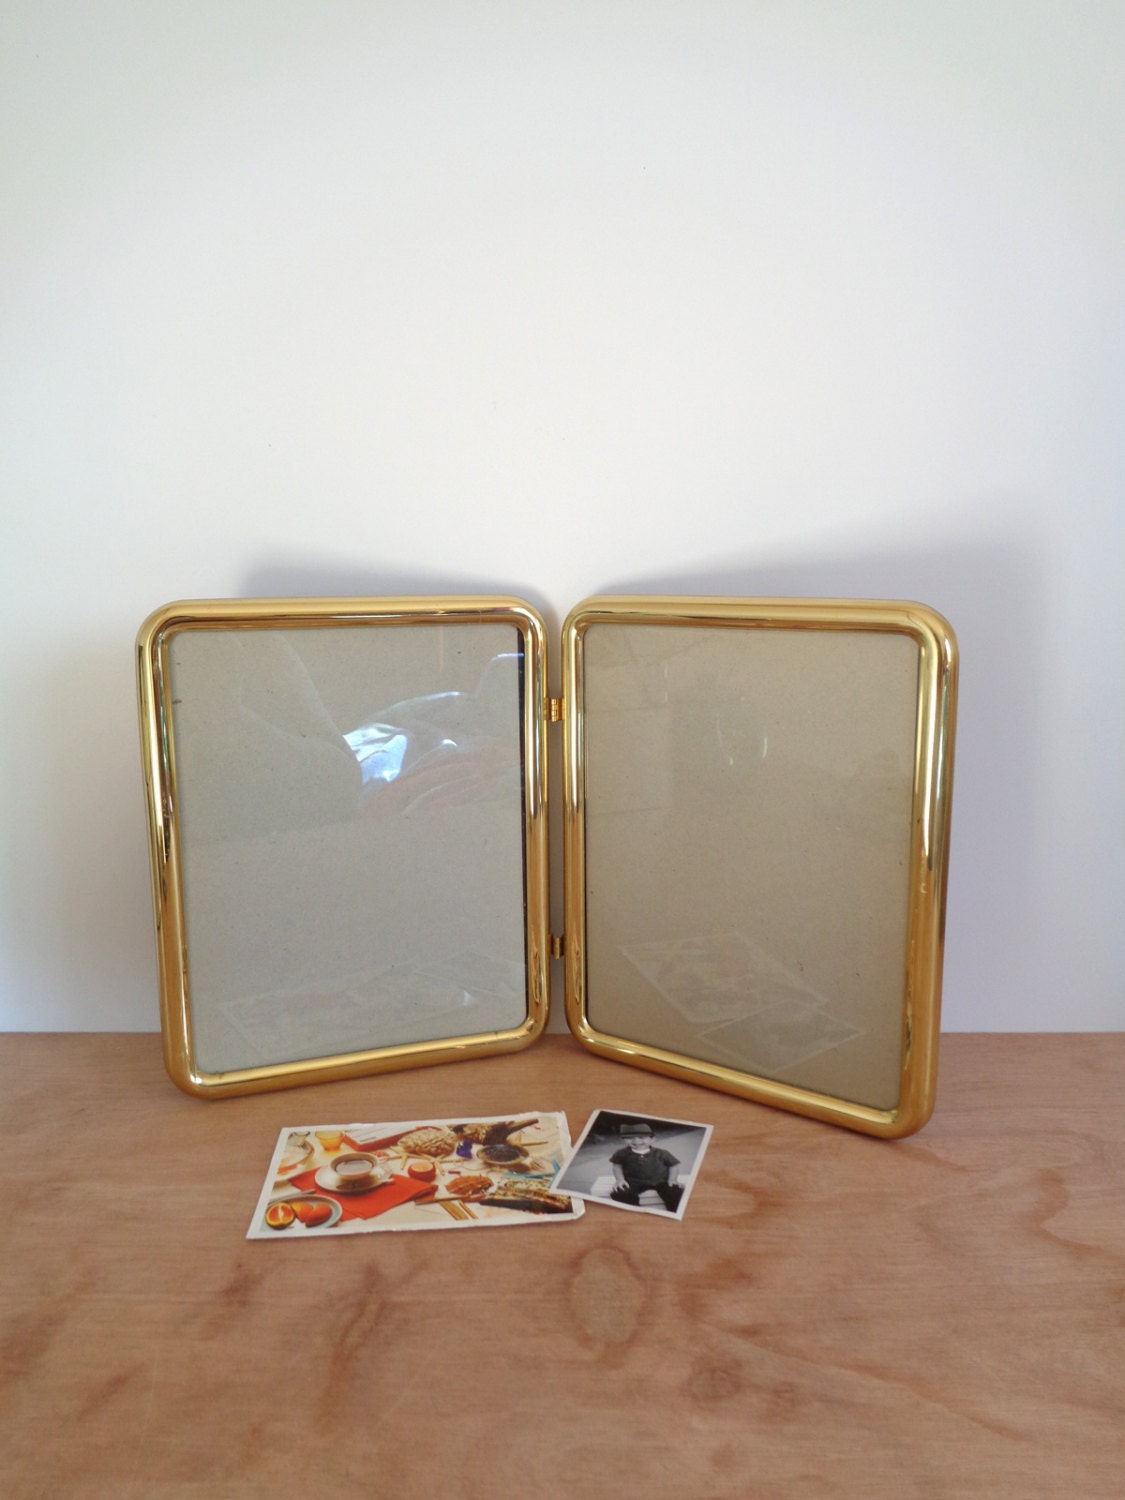 RESERVED---Large Brass Double Picture Frames - 8 x 10 - Vintage ...